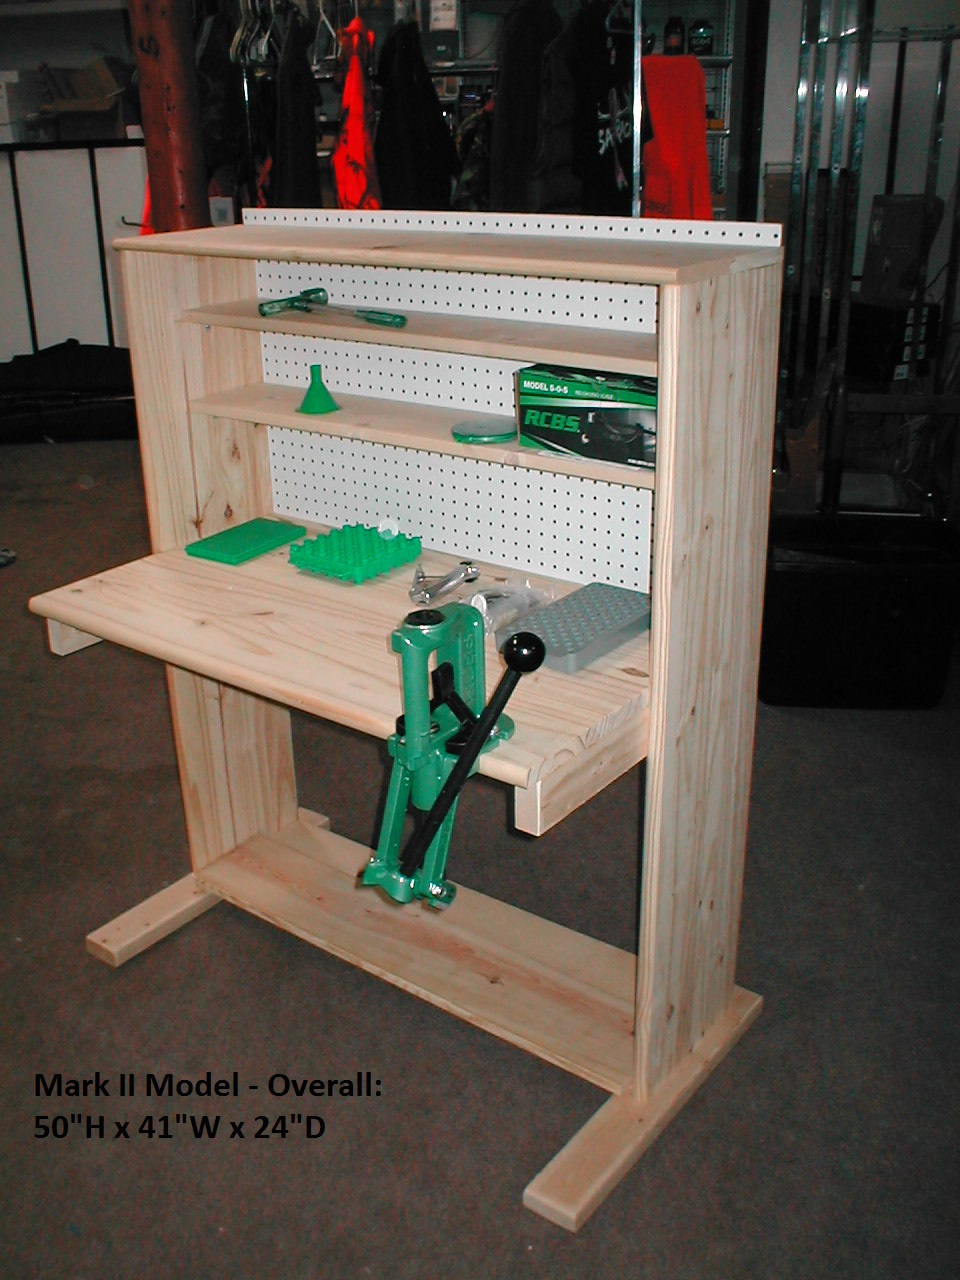 Reloading Benches | Reloading Bench Shelves | Free Reloading Bench Plans